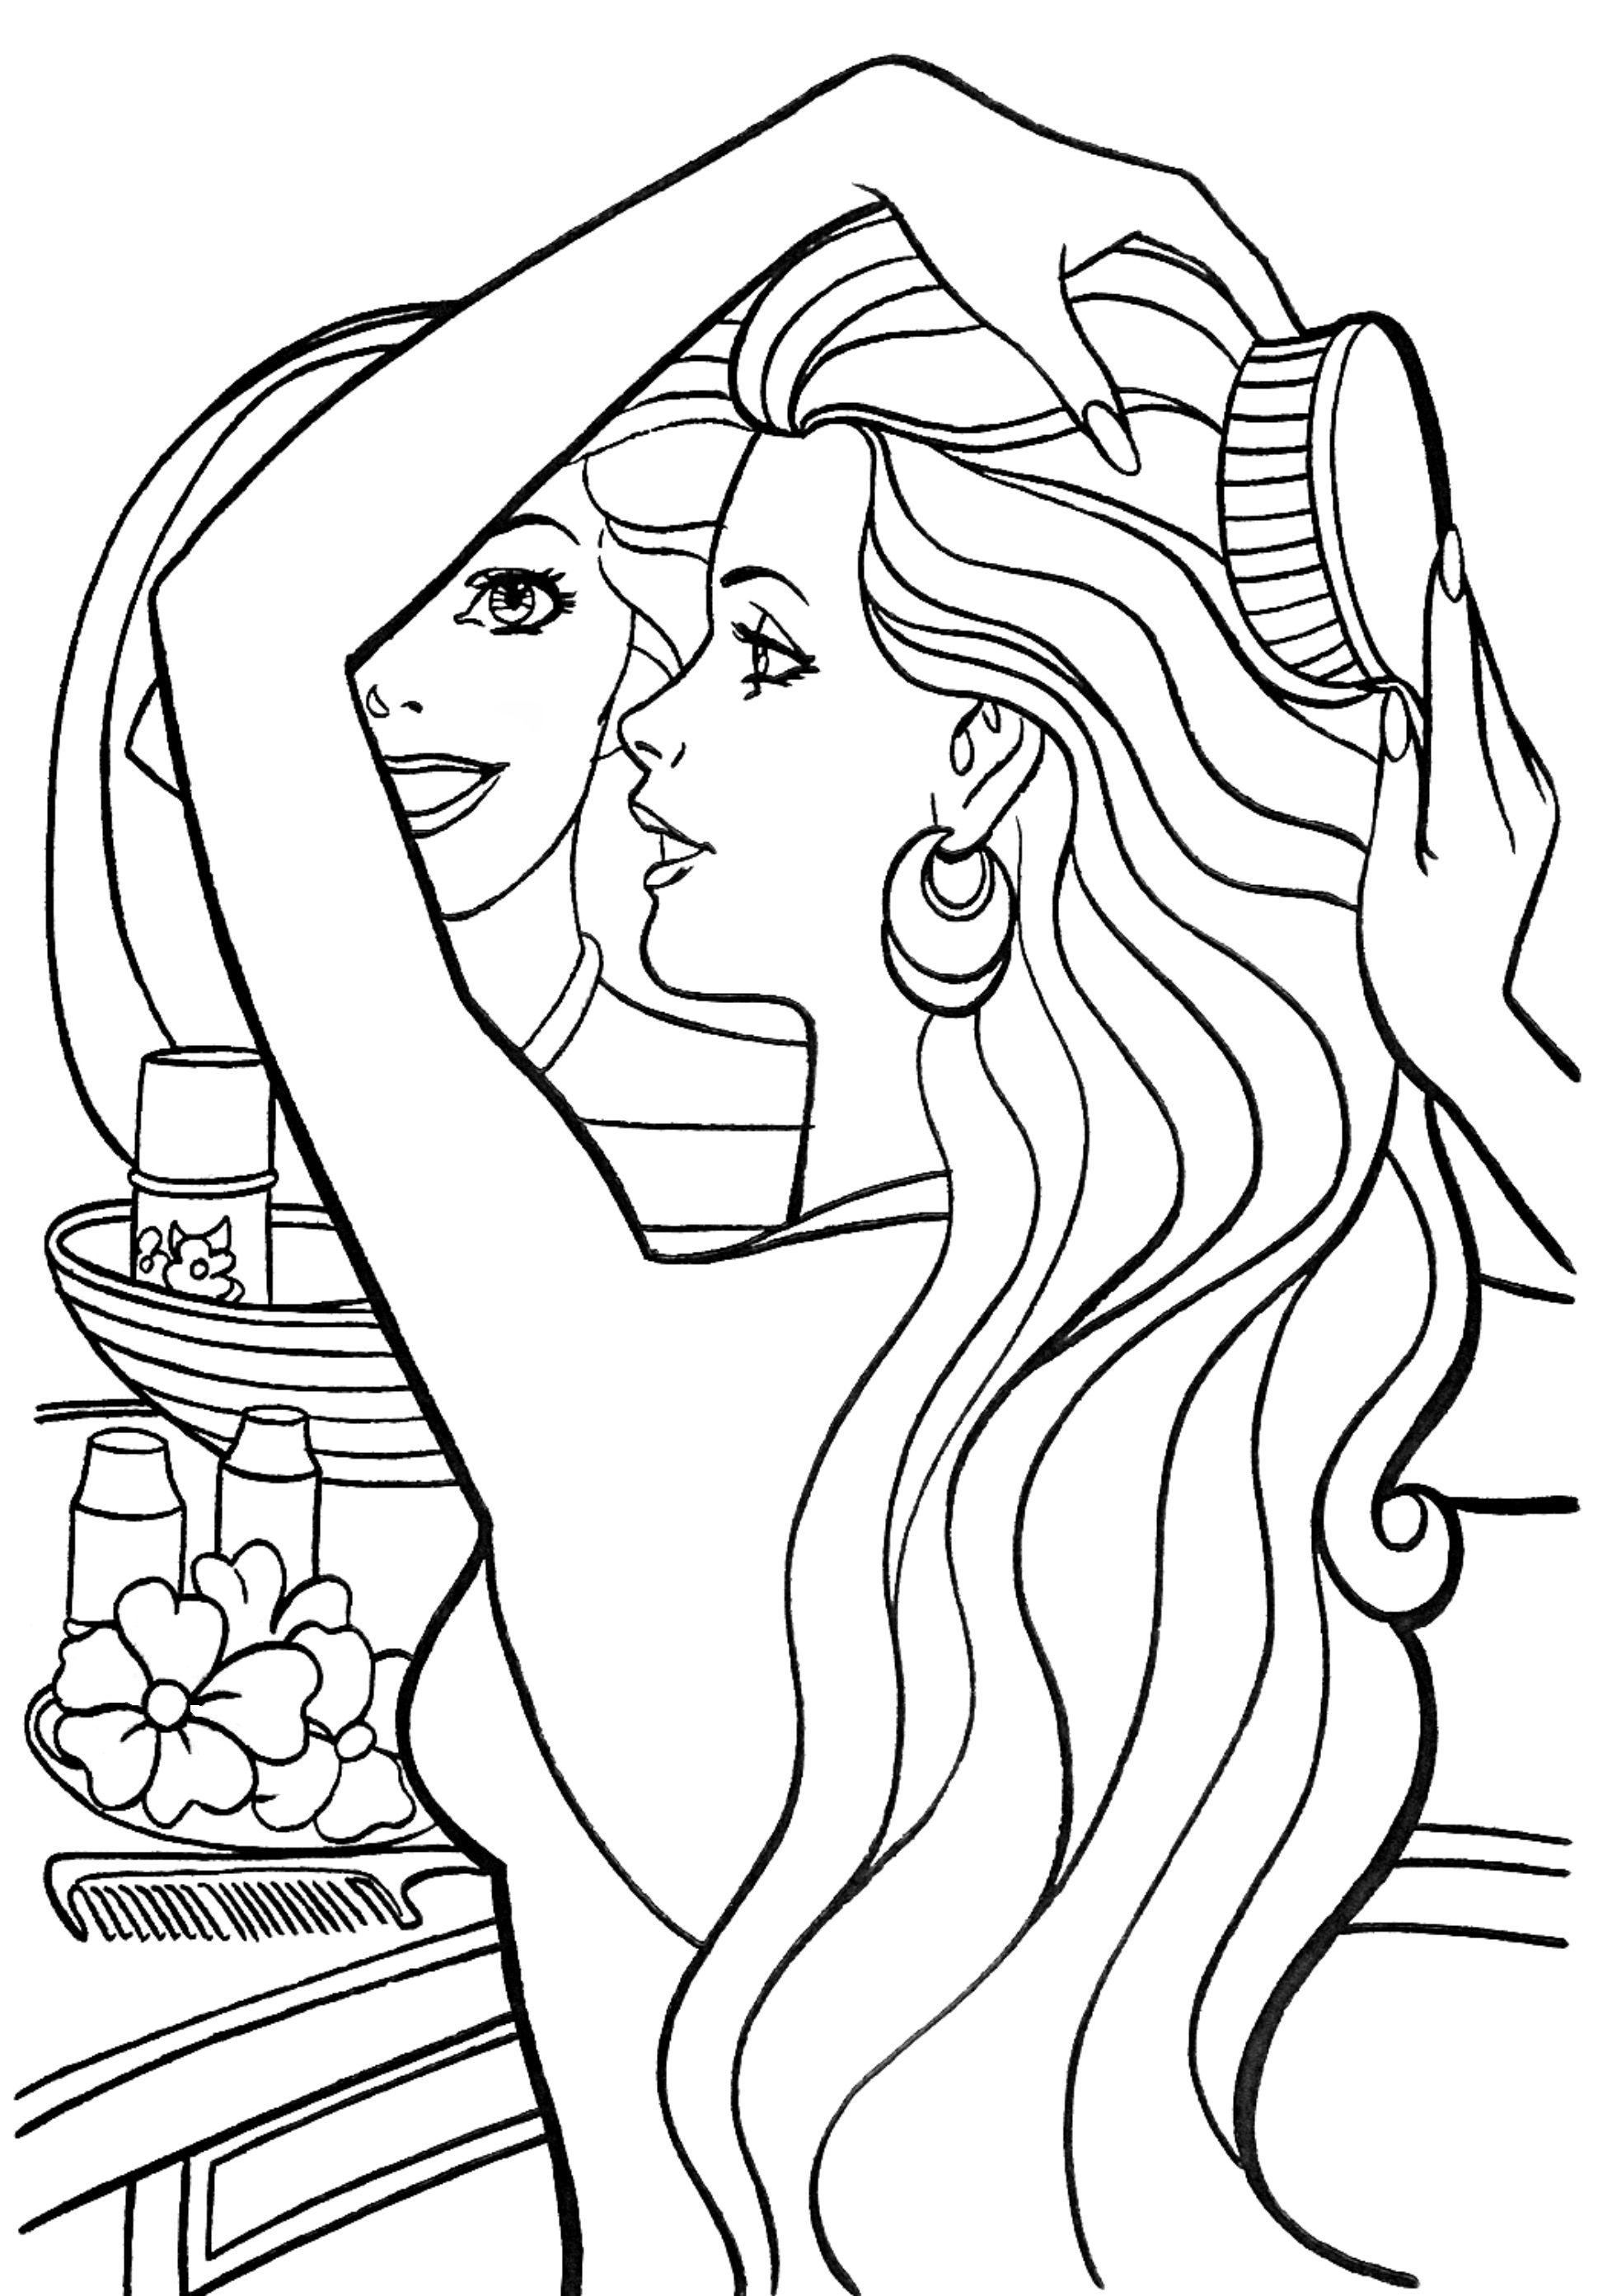 Pin by Tsvetelina on Barbie coloring - part 2 | Barbie ...